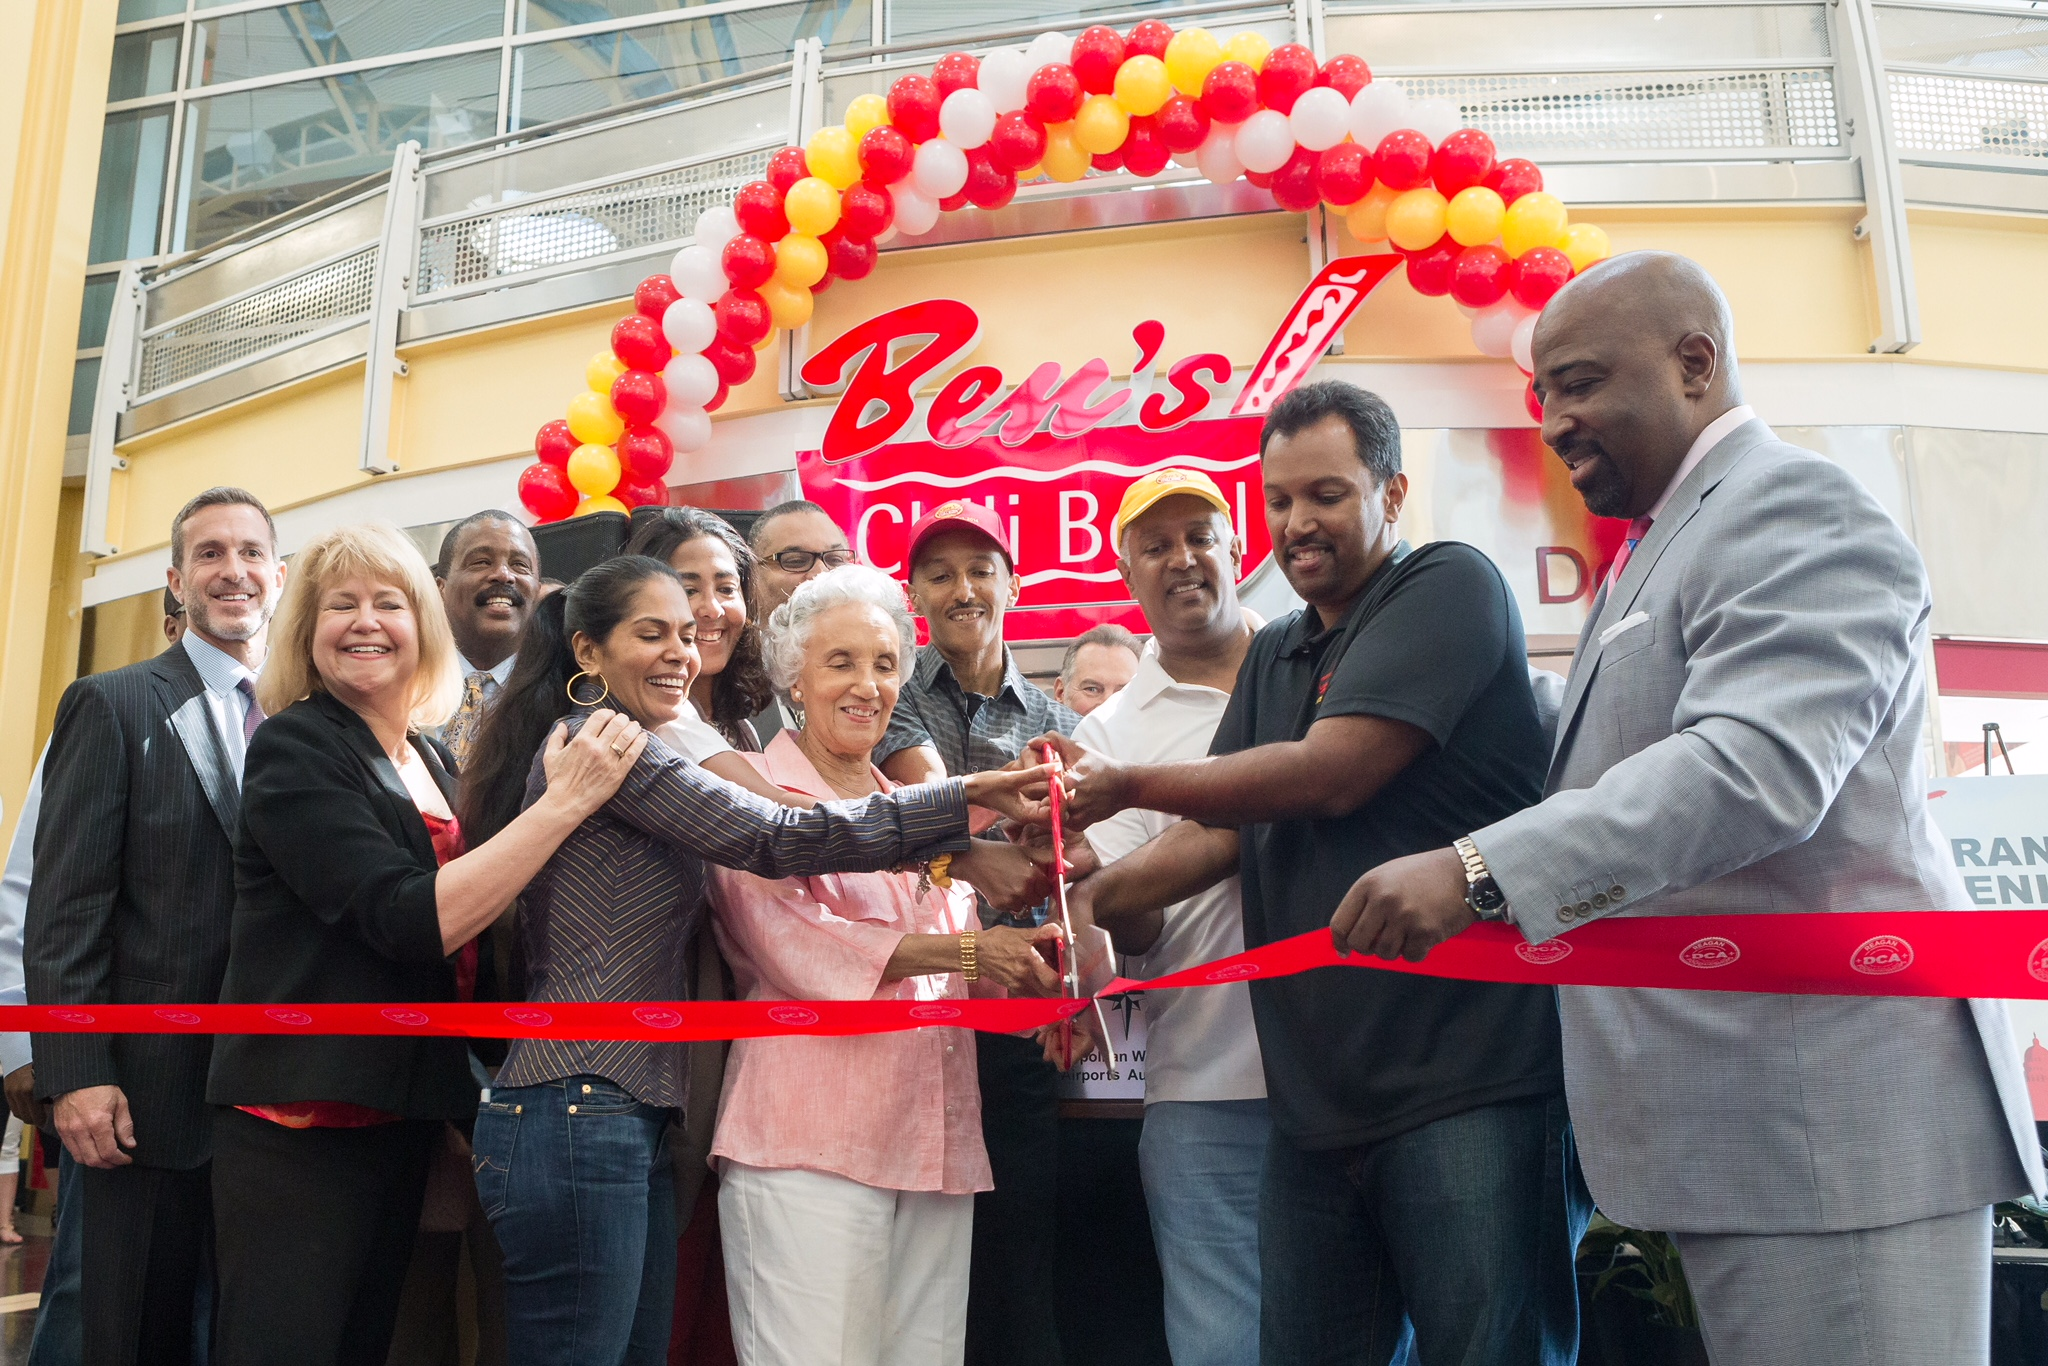 Clarene LeJeune with owners of Ben's Chili Bowl at their grand opening in Reagan National Airport.